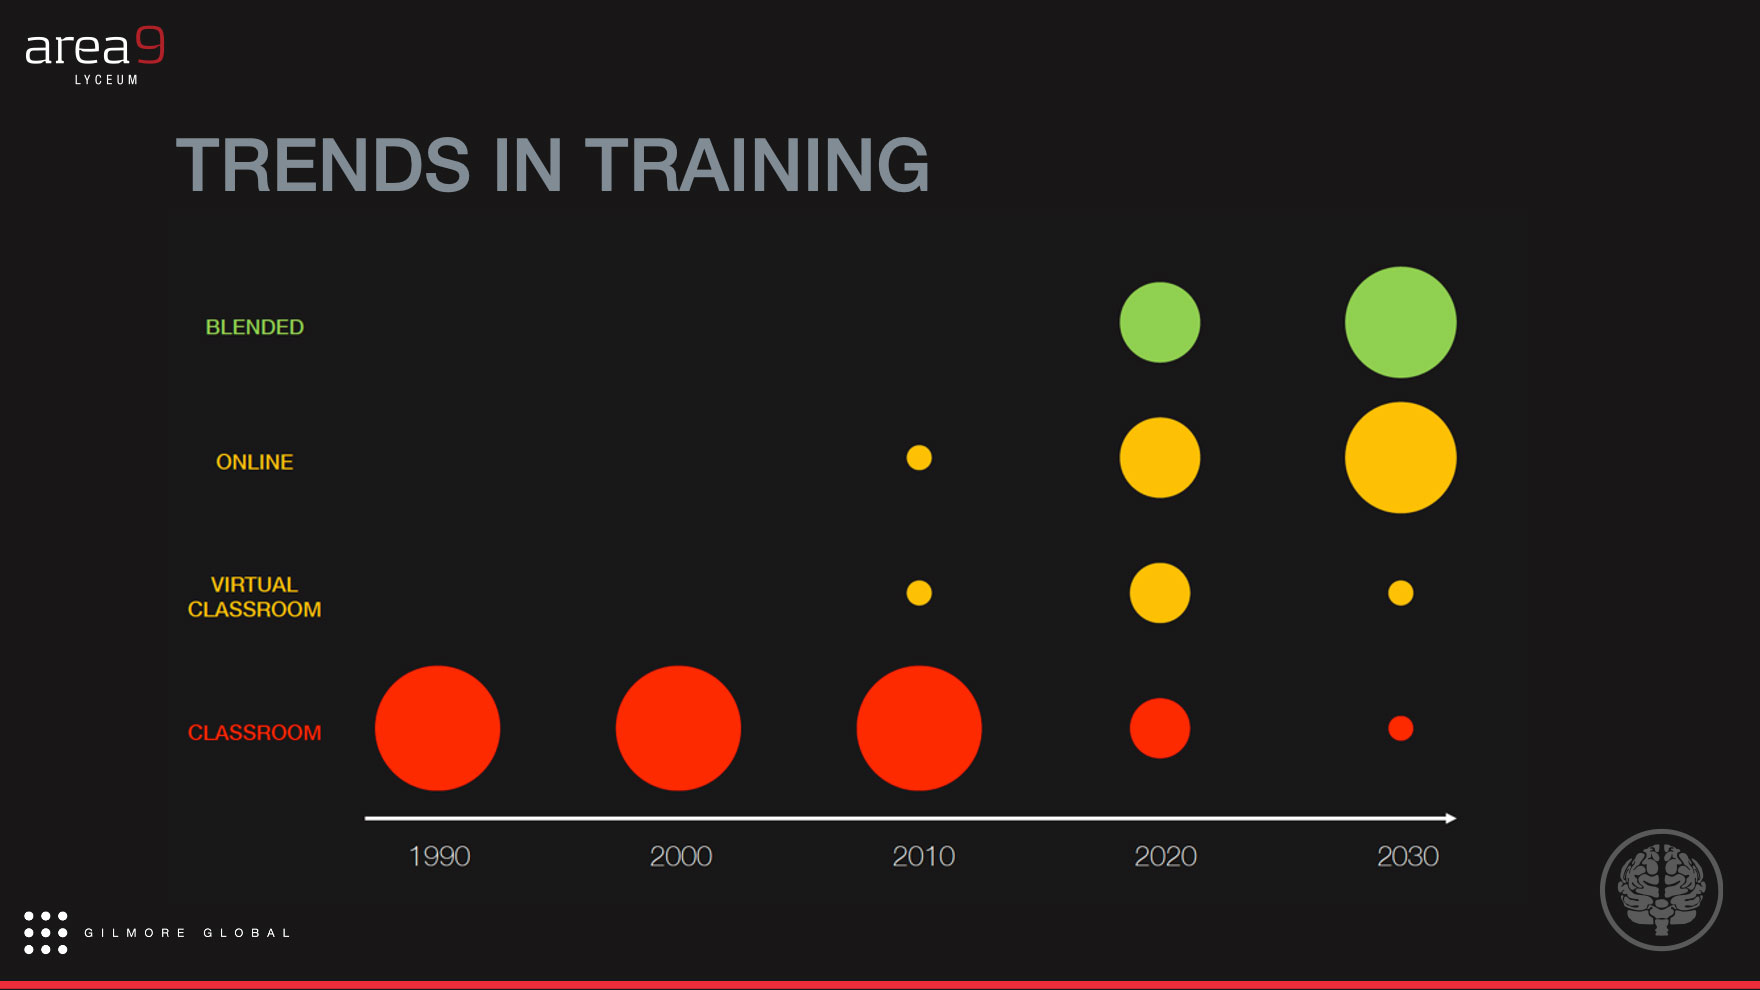 Trends in Training